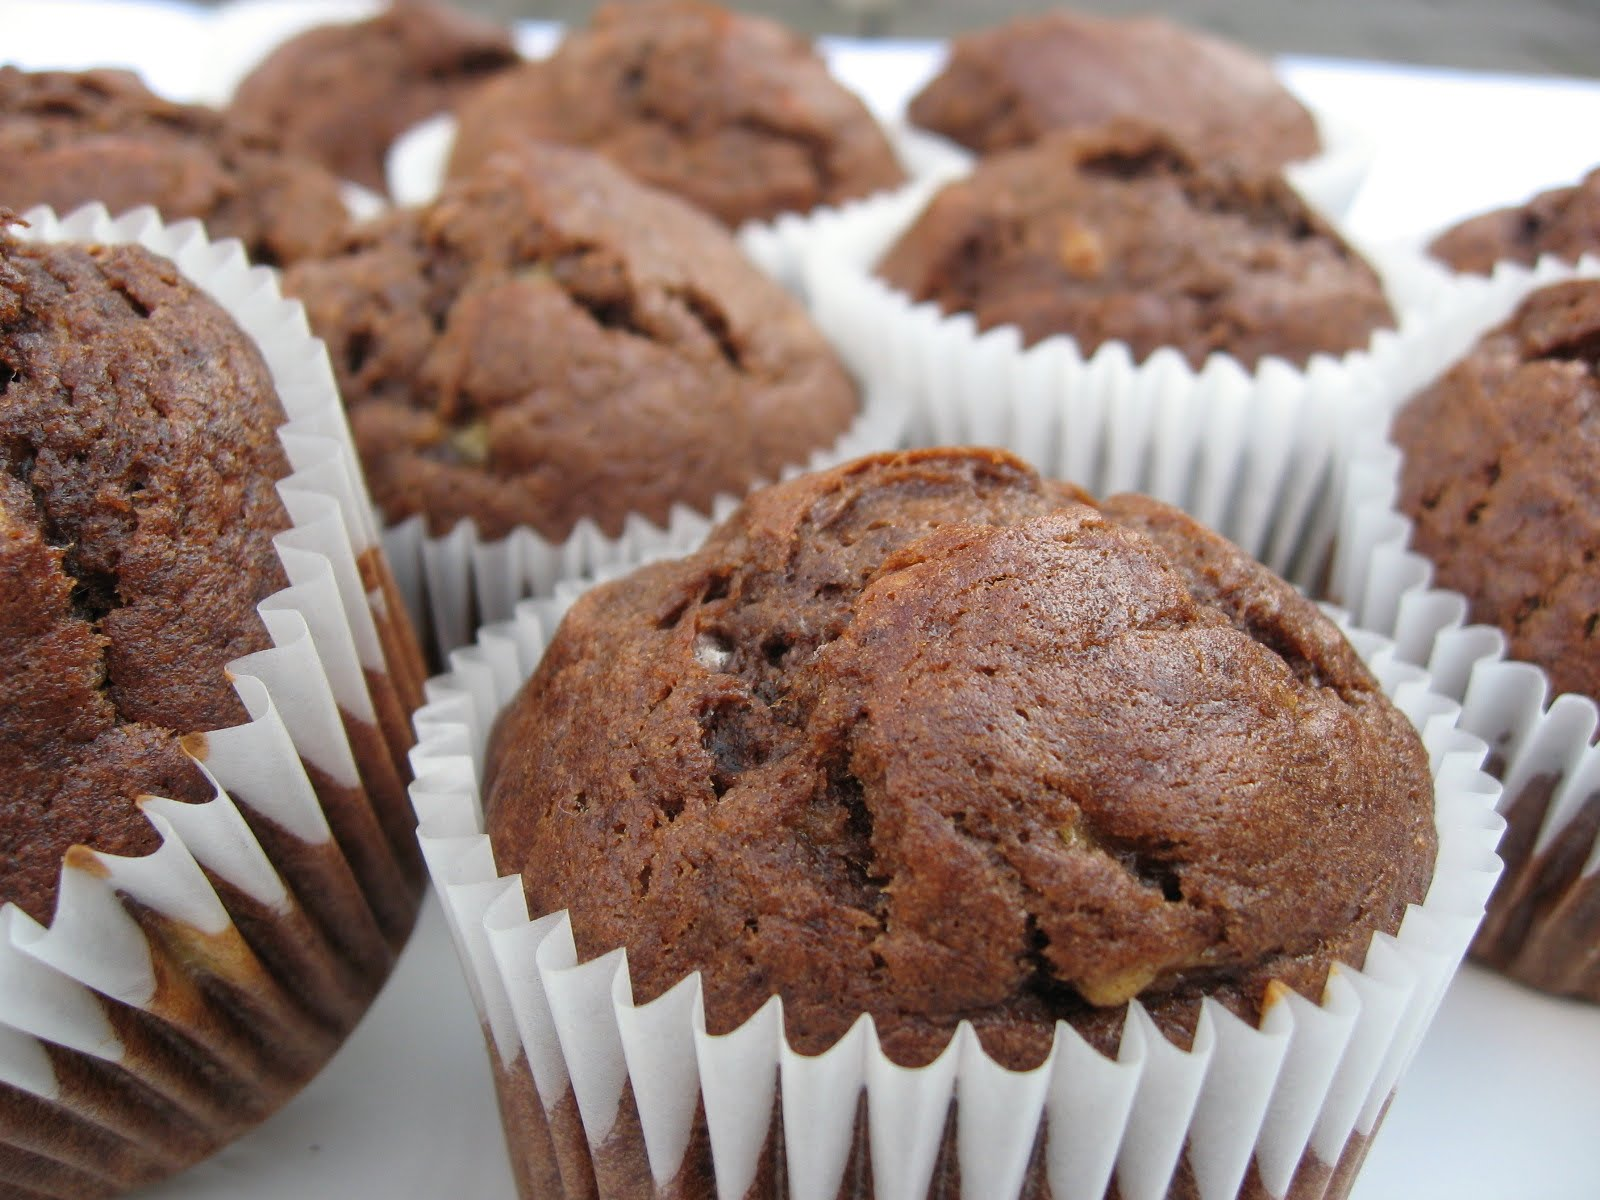 How To Make A Chocolate Chip Muffin In The Microwave